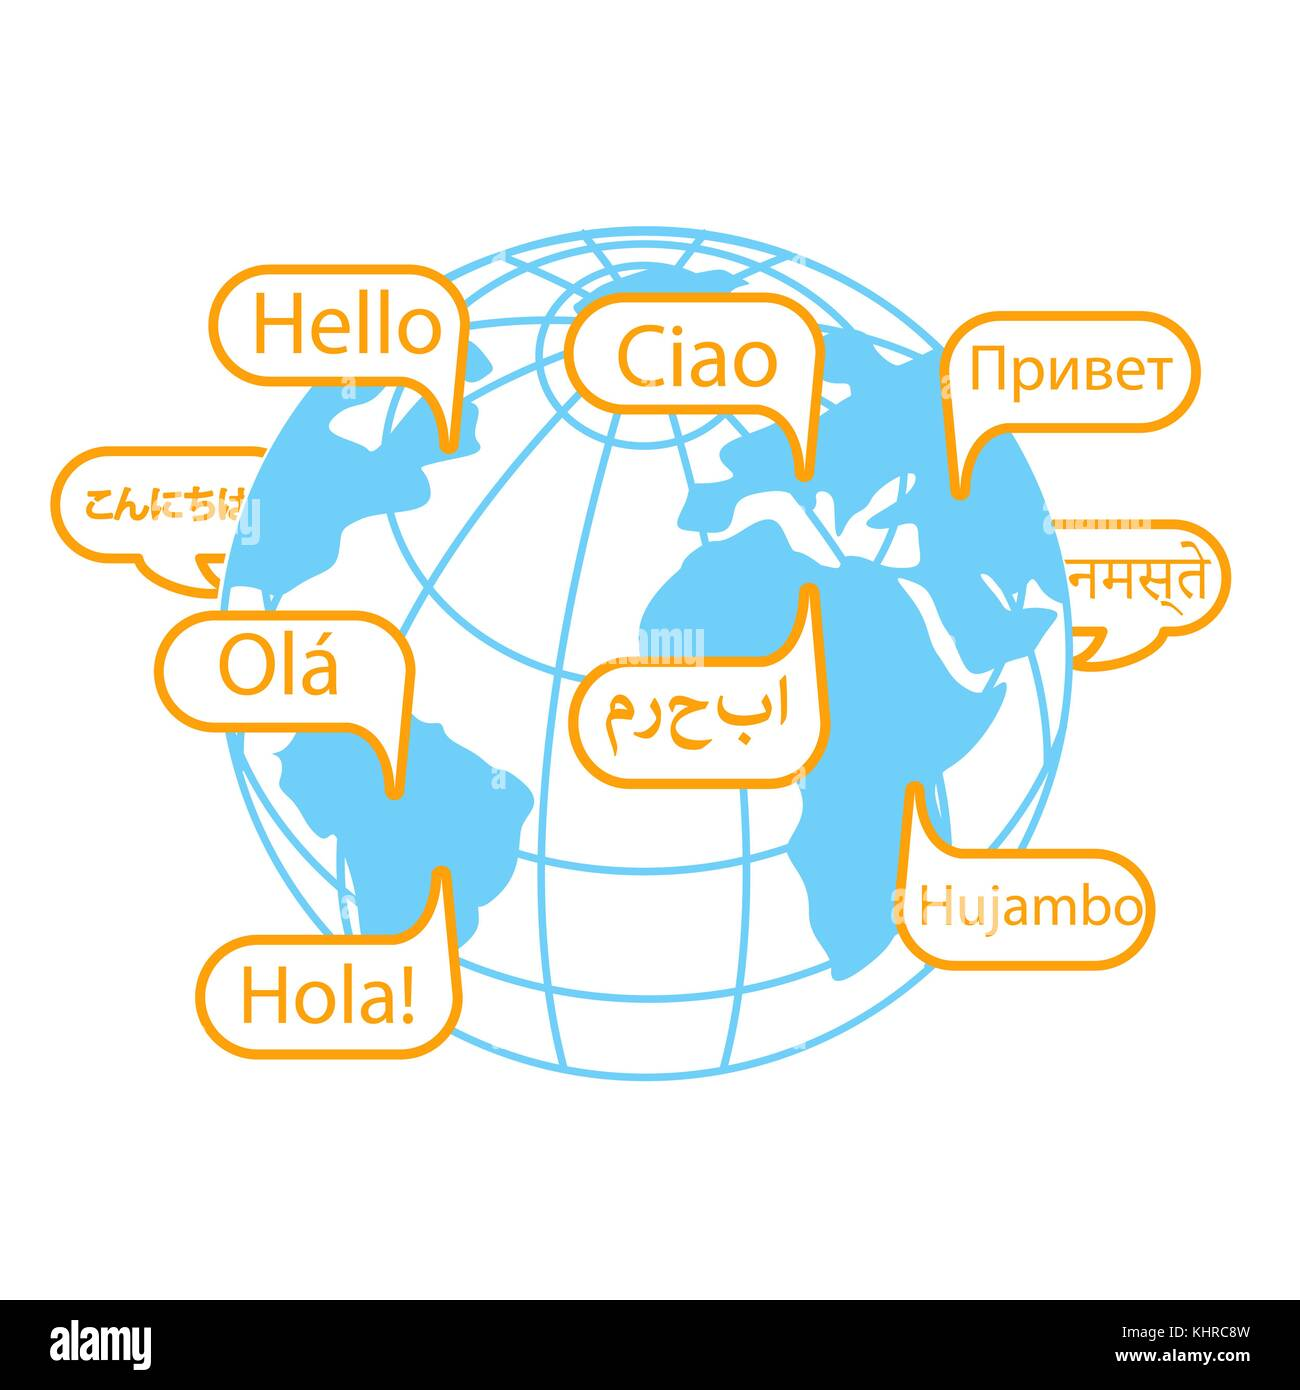 Concept Of Communication In Different Languages In The Form Of Earth